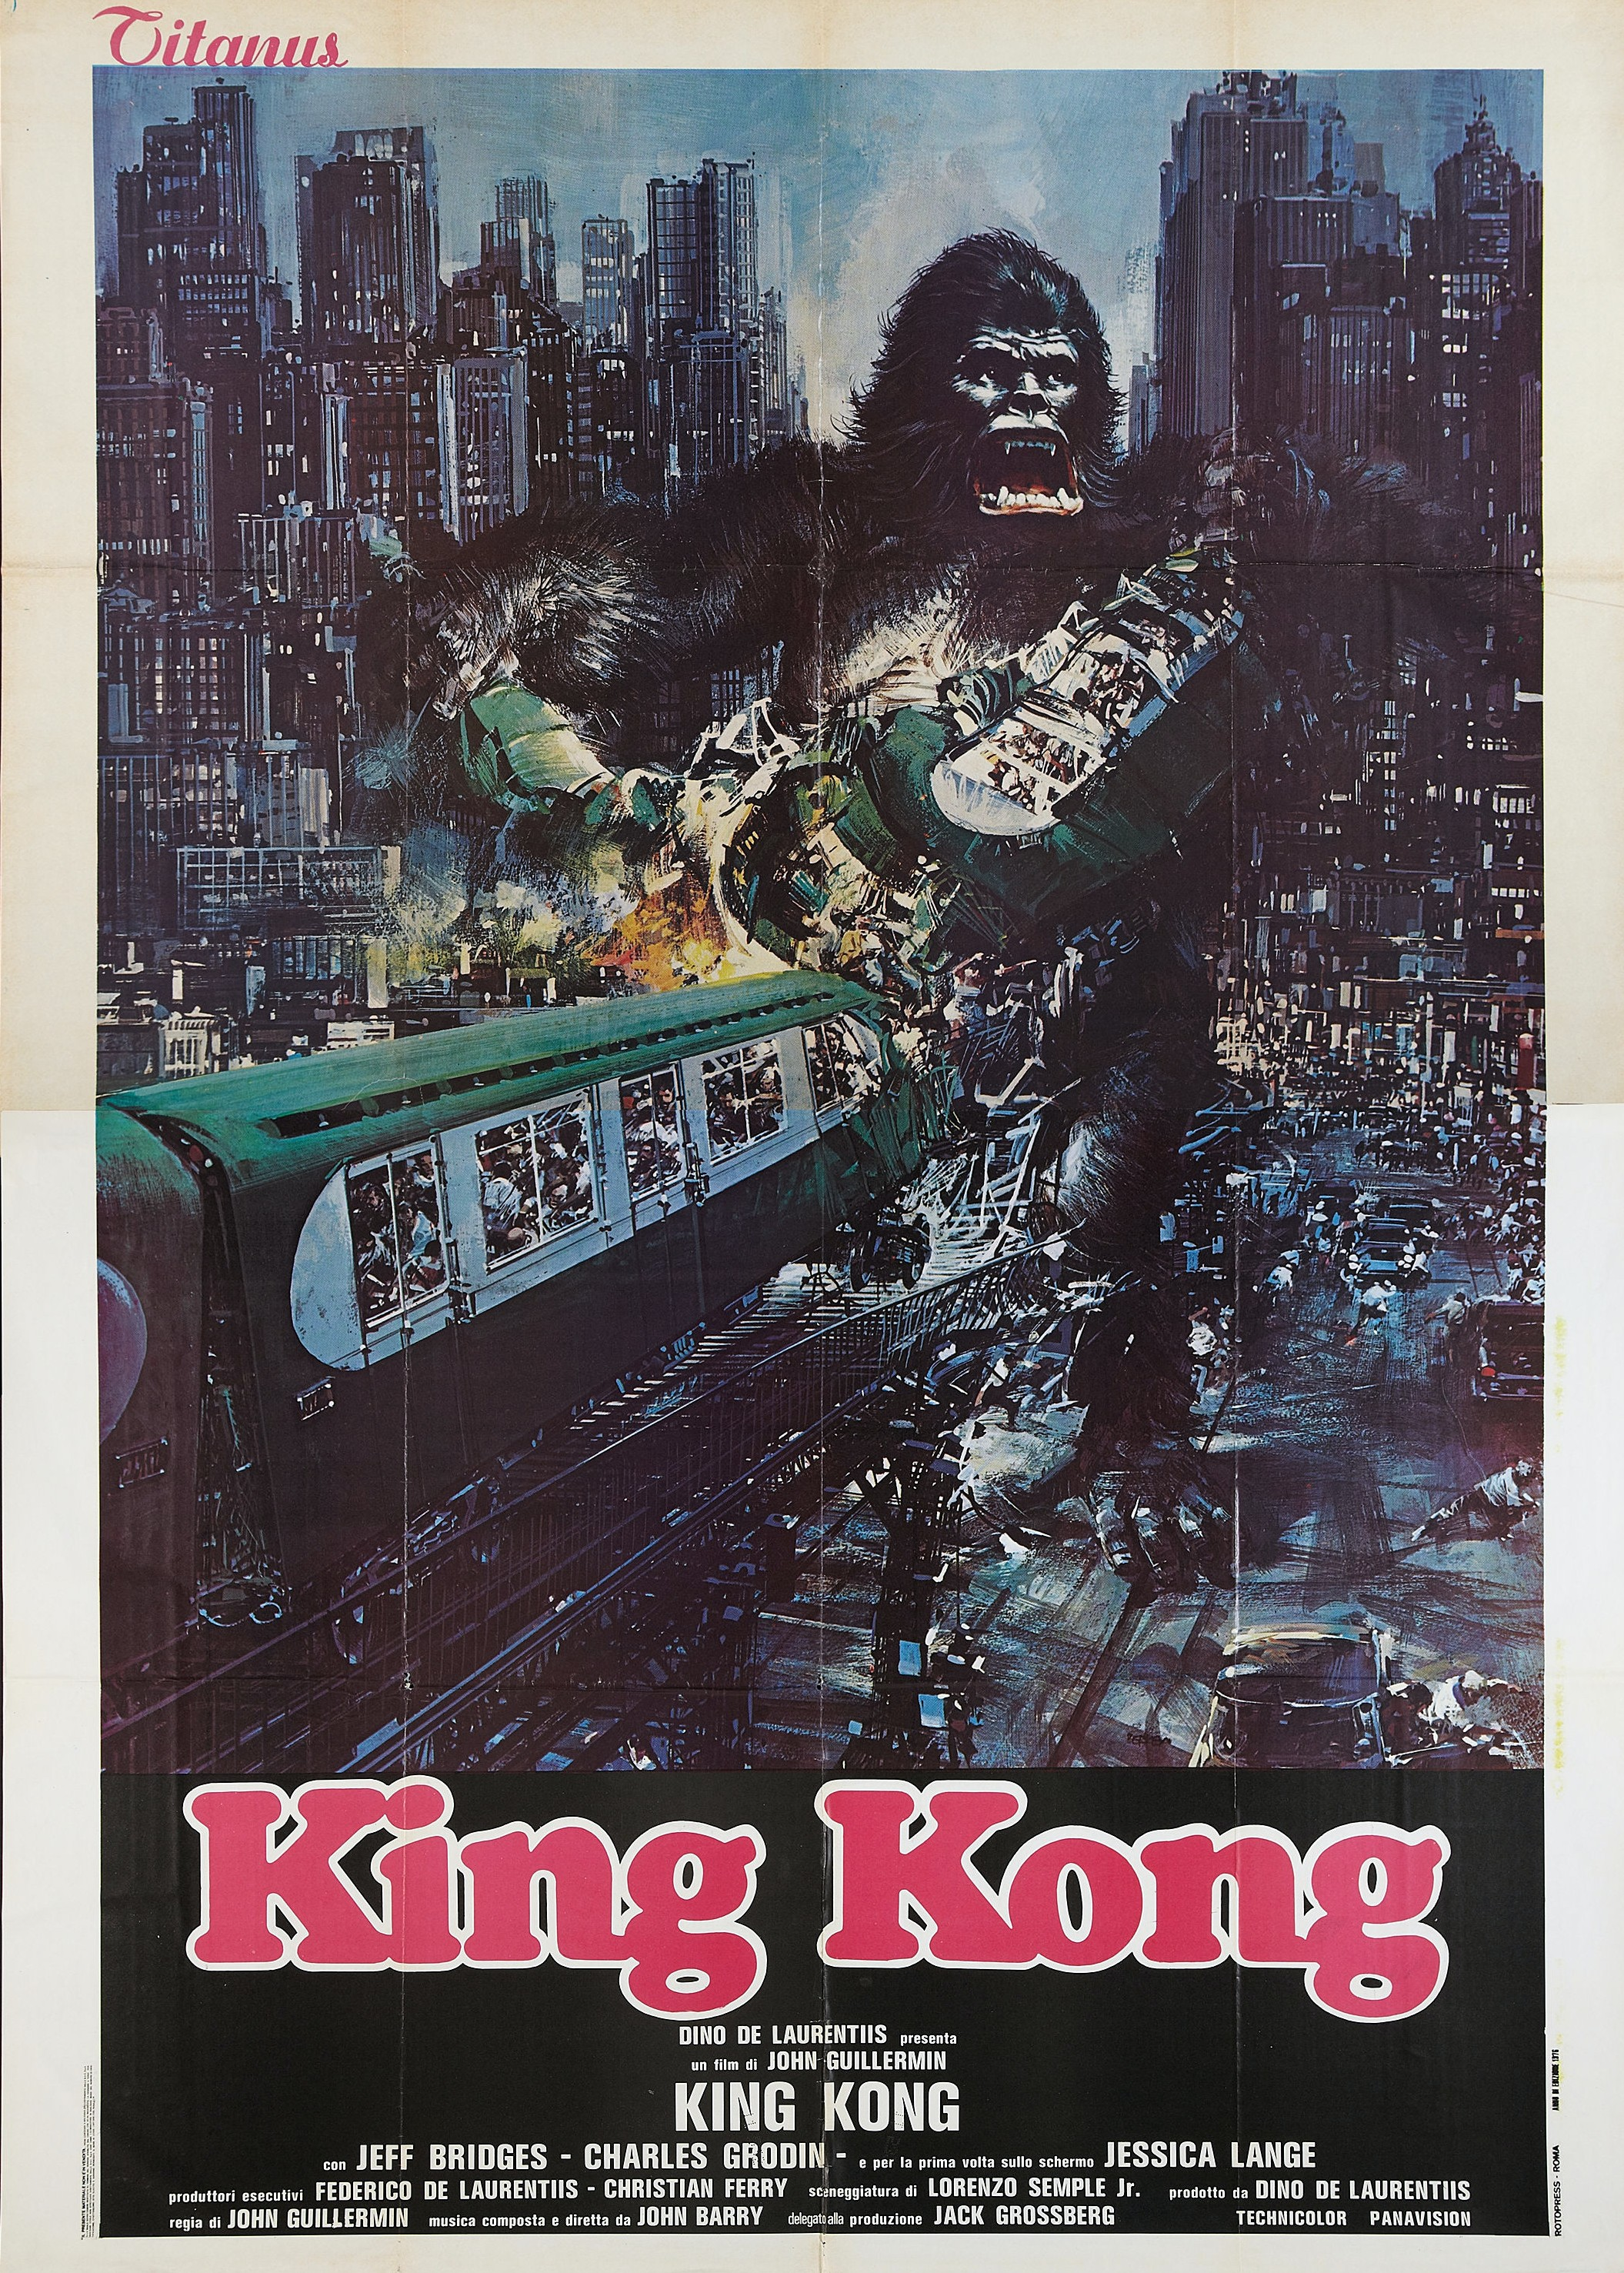 King Kong Movies Posters for sale at AllPosterscom